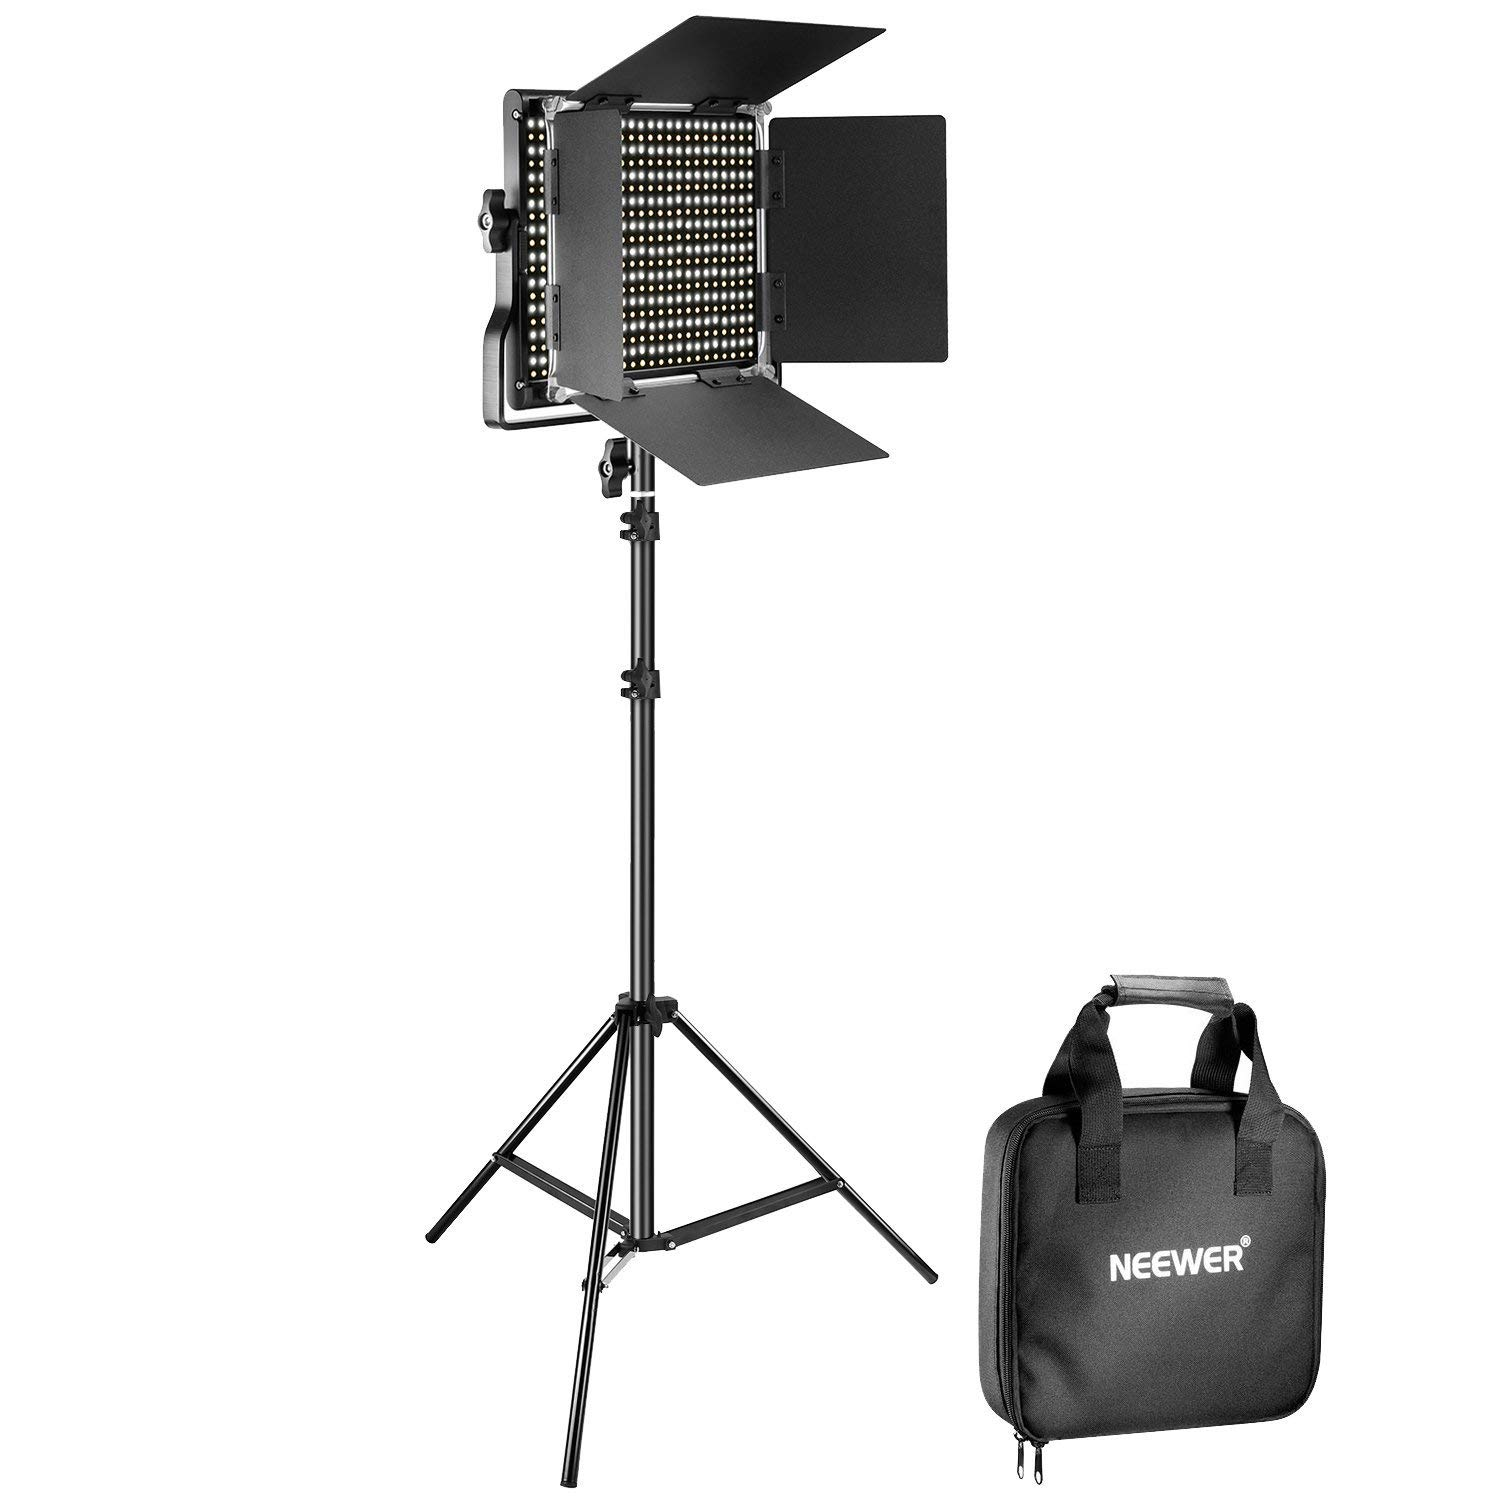 Neewer Bi-Color 660 LED Video Light and Stand Kit Includes: 3200-5600K CRI 96+ Dimmable Light with U Bracket and Barndoor and 75 inches Light Stand for Studio Photography, Video Shooting by Neewer